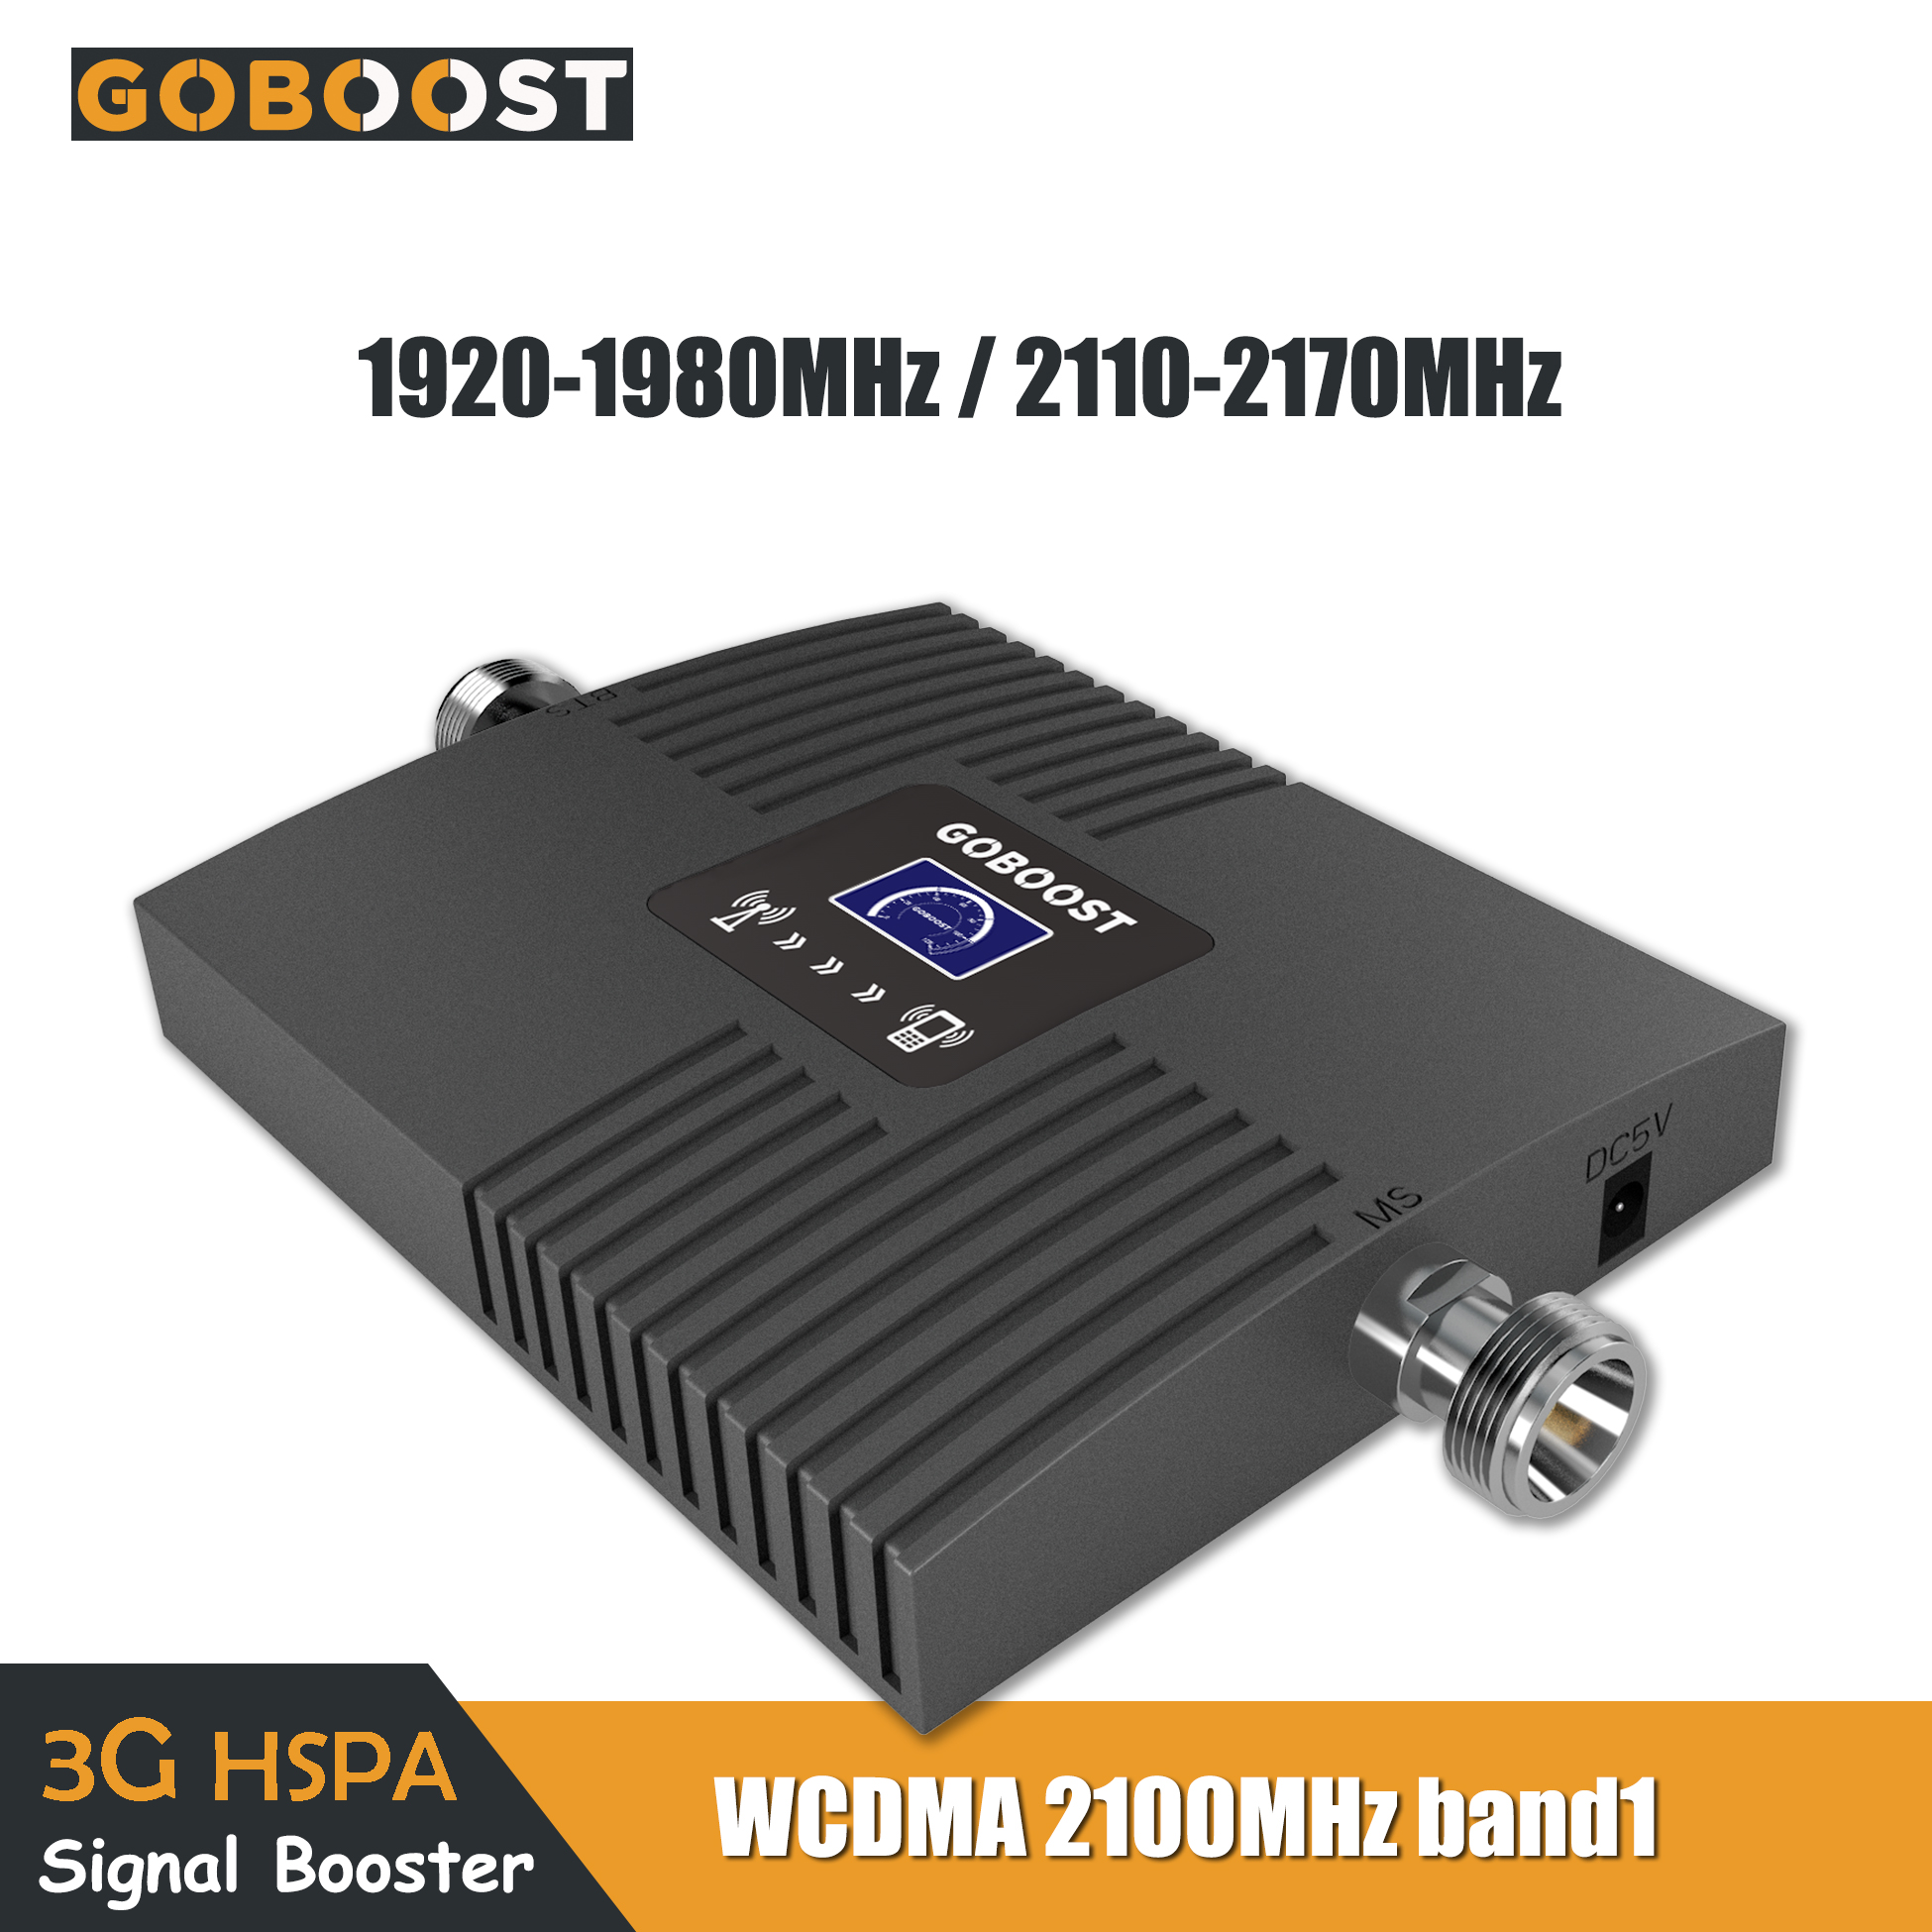 Mini WCDMA 3G HSPA UMTS 2100mhz Band1cell Phone Cellular Signal Booster LCD Display Mobile Amplifier Repeater Network 65dB Gain